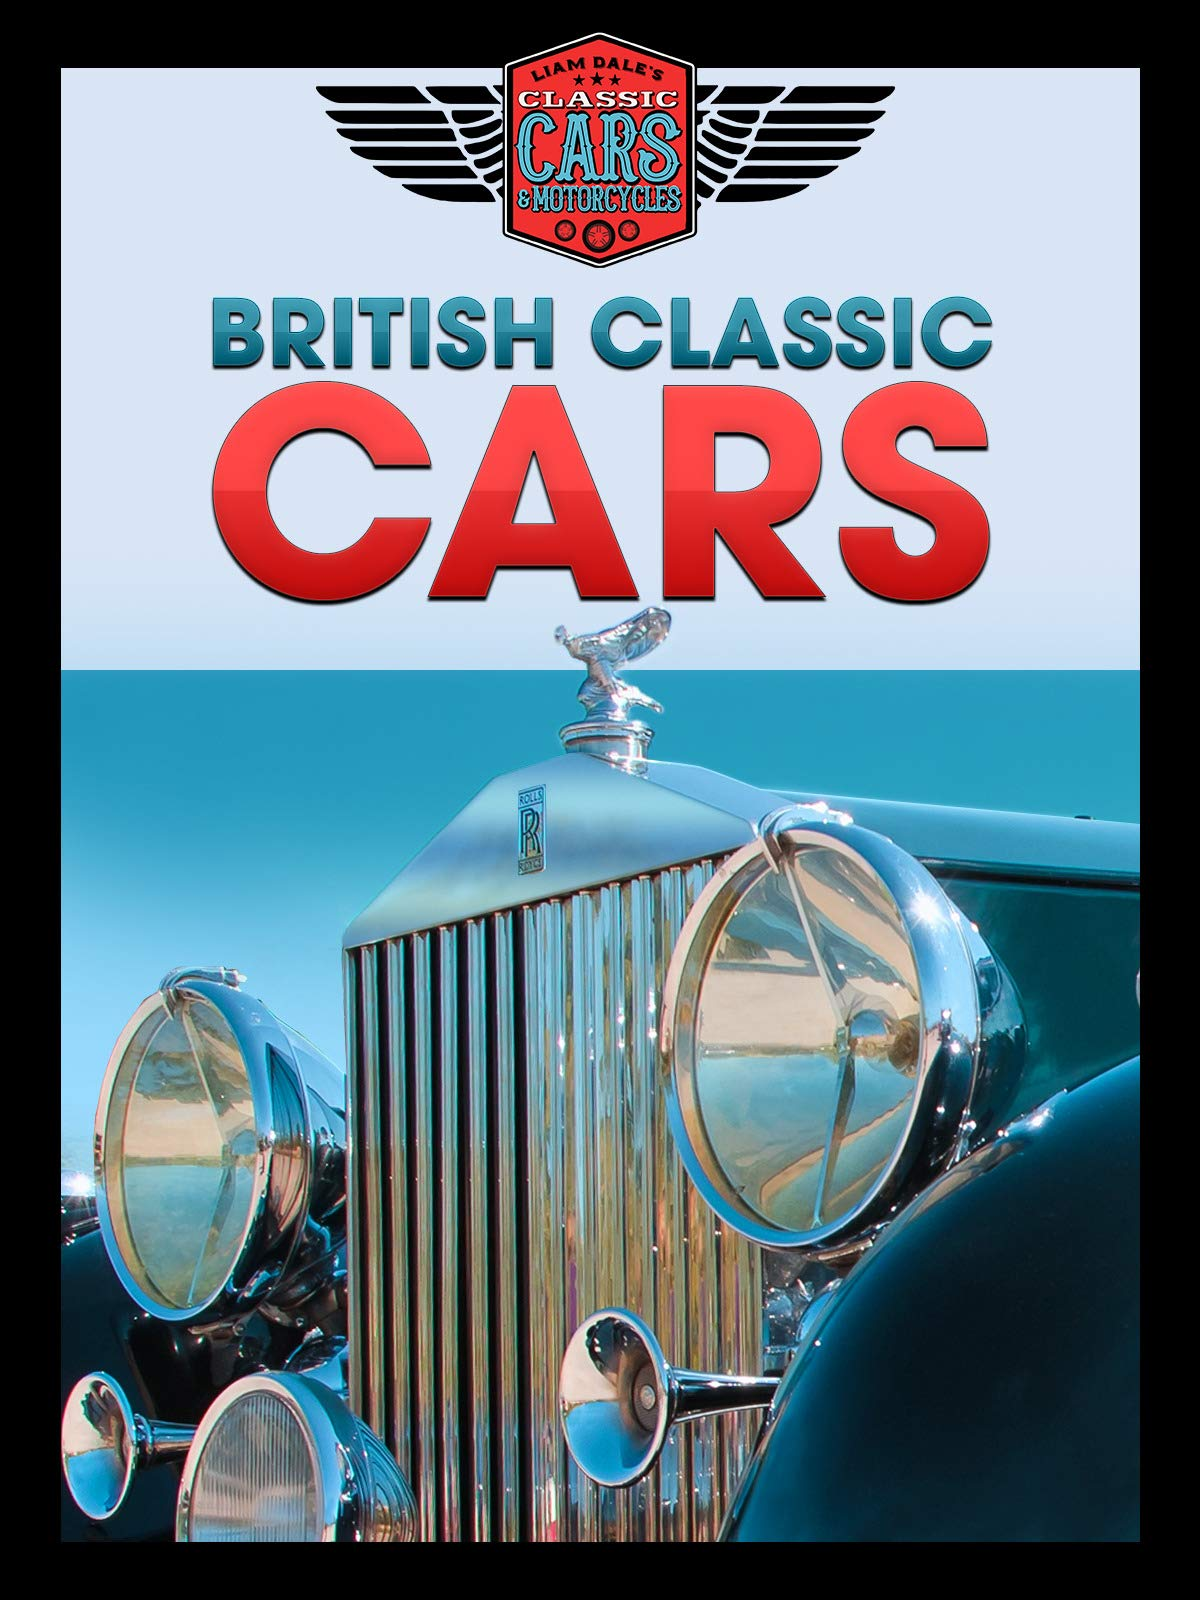 British Classic Cars: Liam Dale's Classic Cars & Motorcycles on Amazon Prime Video UK